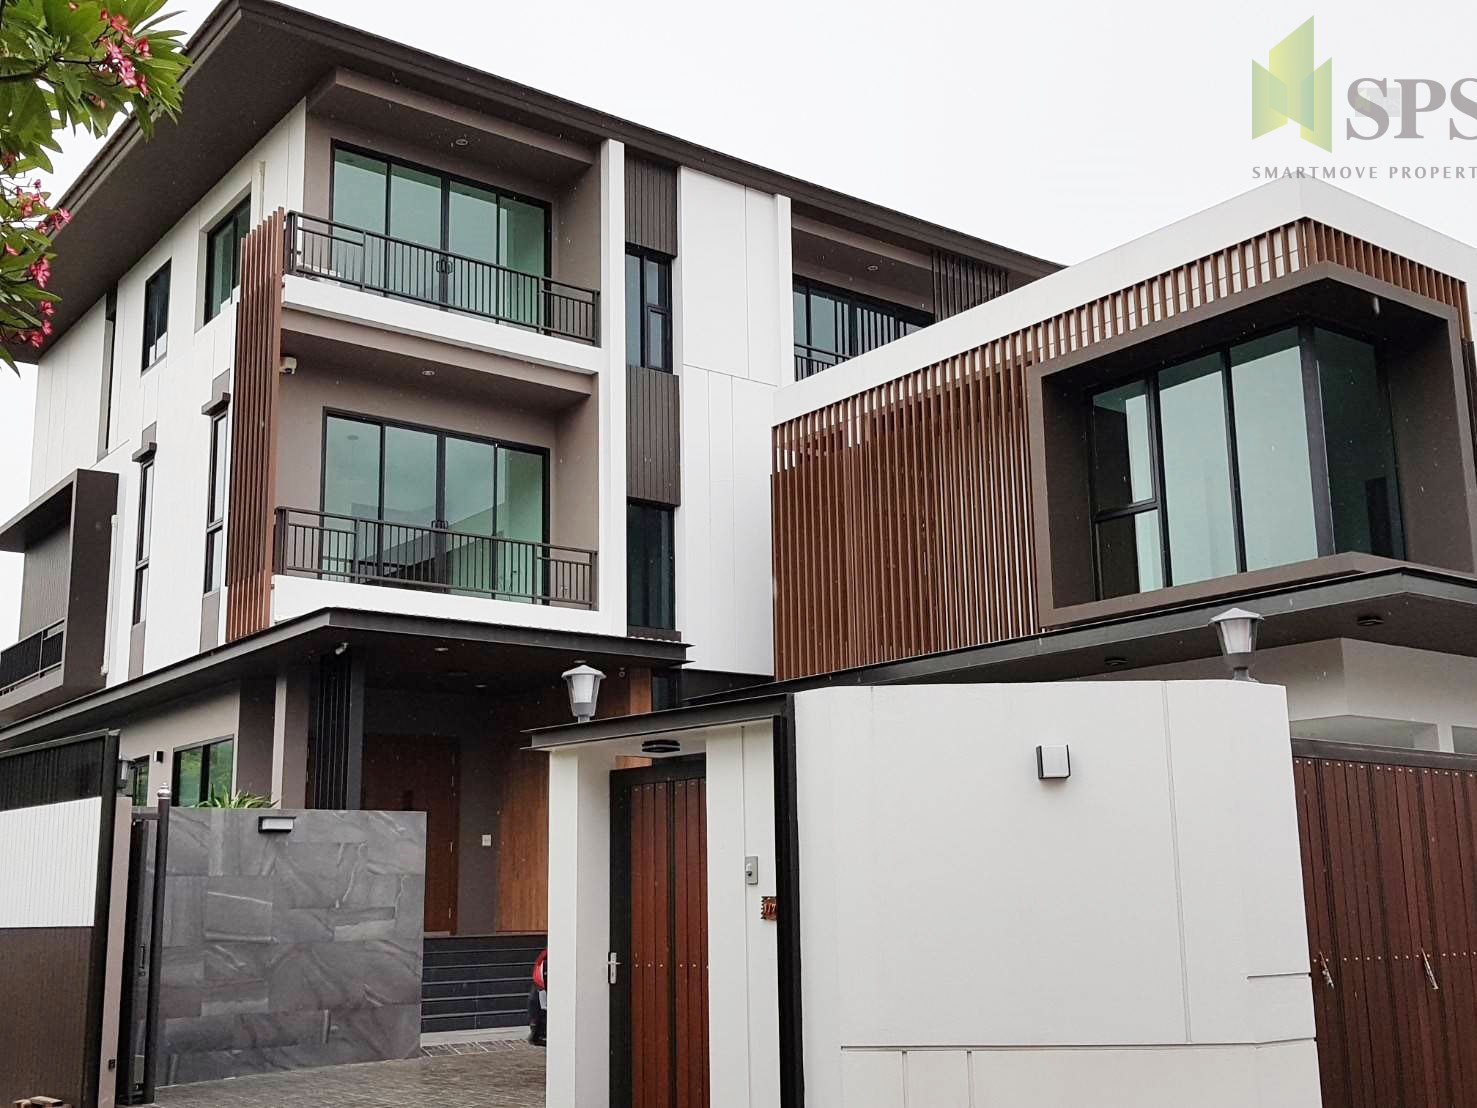 Brand-New Luxury 3-Storey house in PRIDI for SALE (Property ID: SPSCS028)